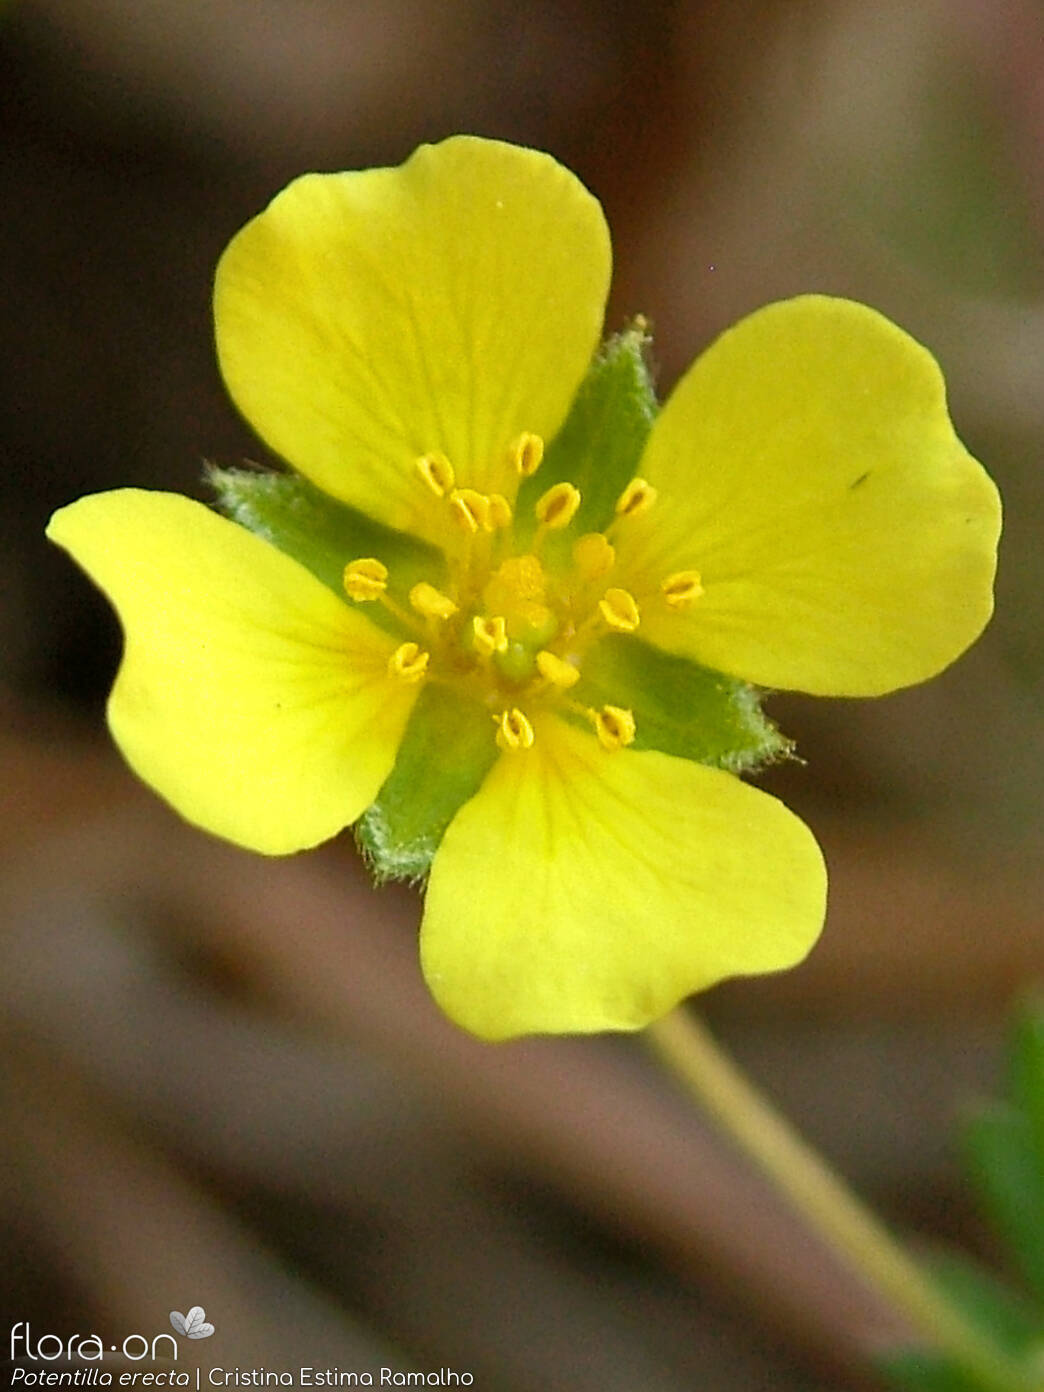 Potentilla erecta - Flor (close-up) | Cristina Estima Ramalho; CC BY-NC 4.0